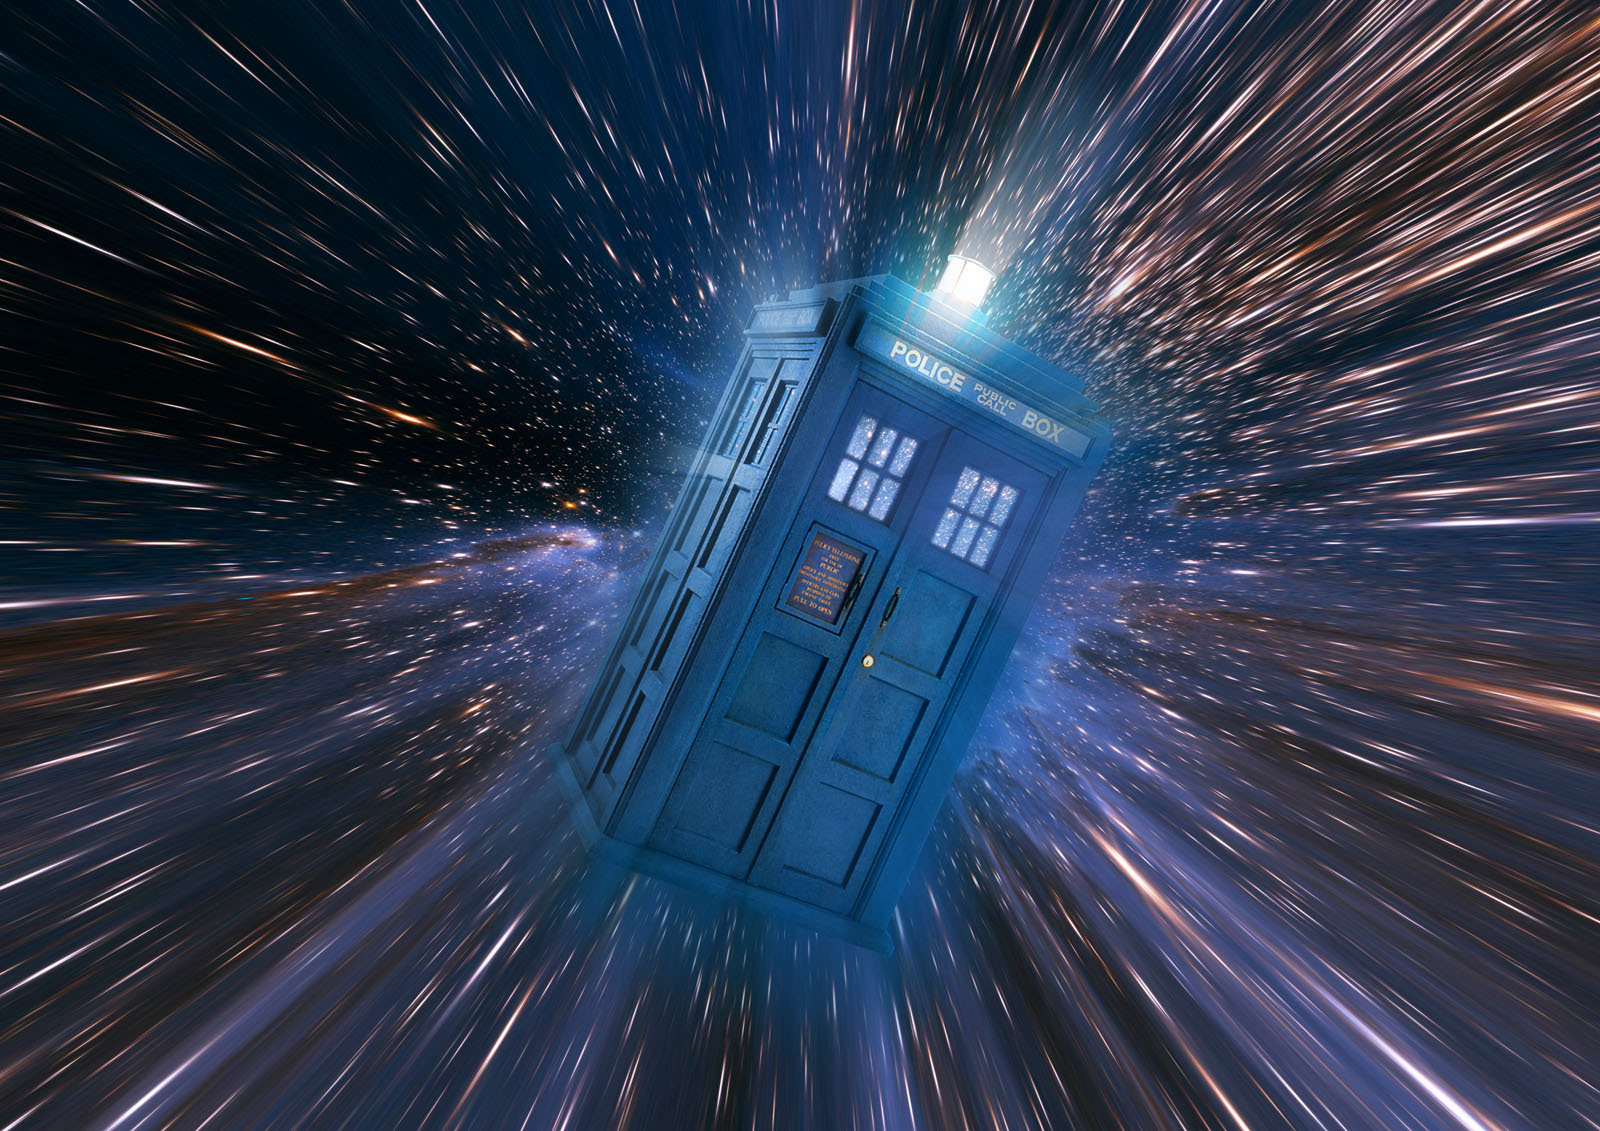 the TARDIS flying through space and time